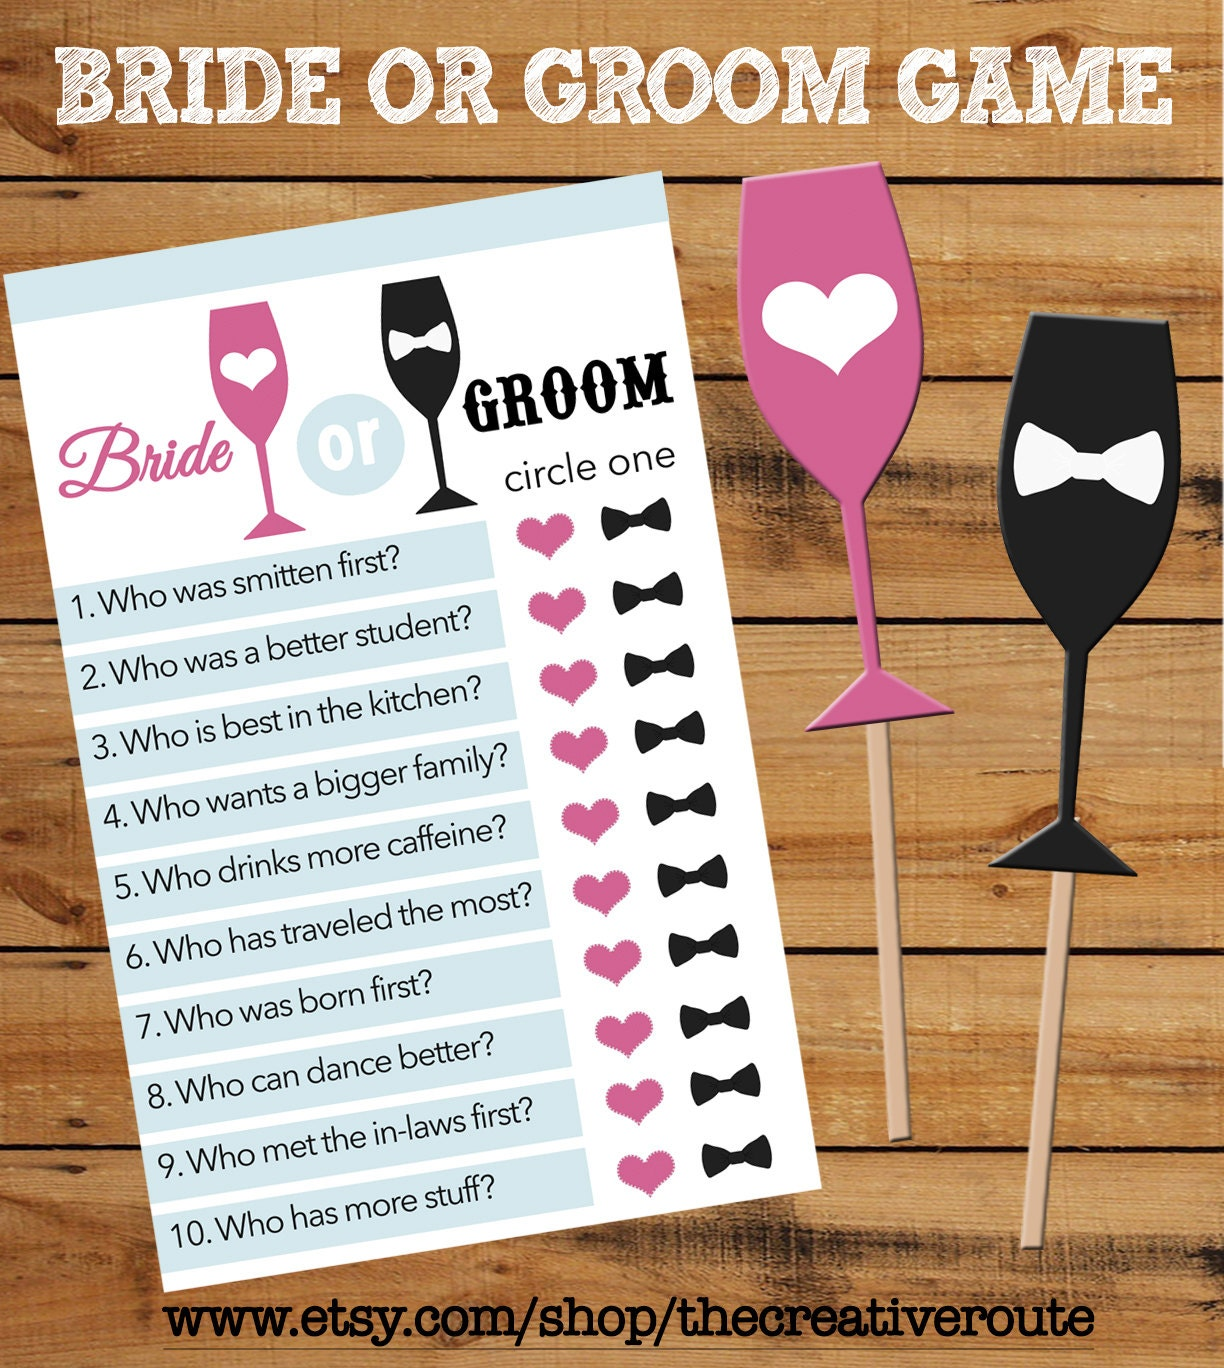 Wedding Shower Games For Bride And Groom Bride or Groom Printable Game